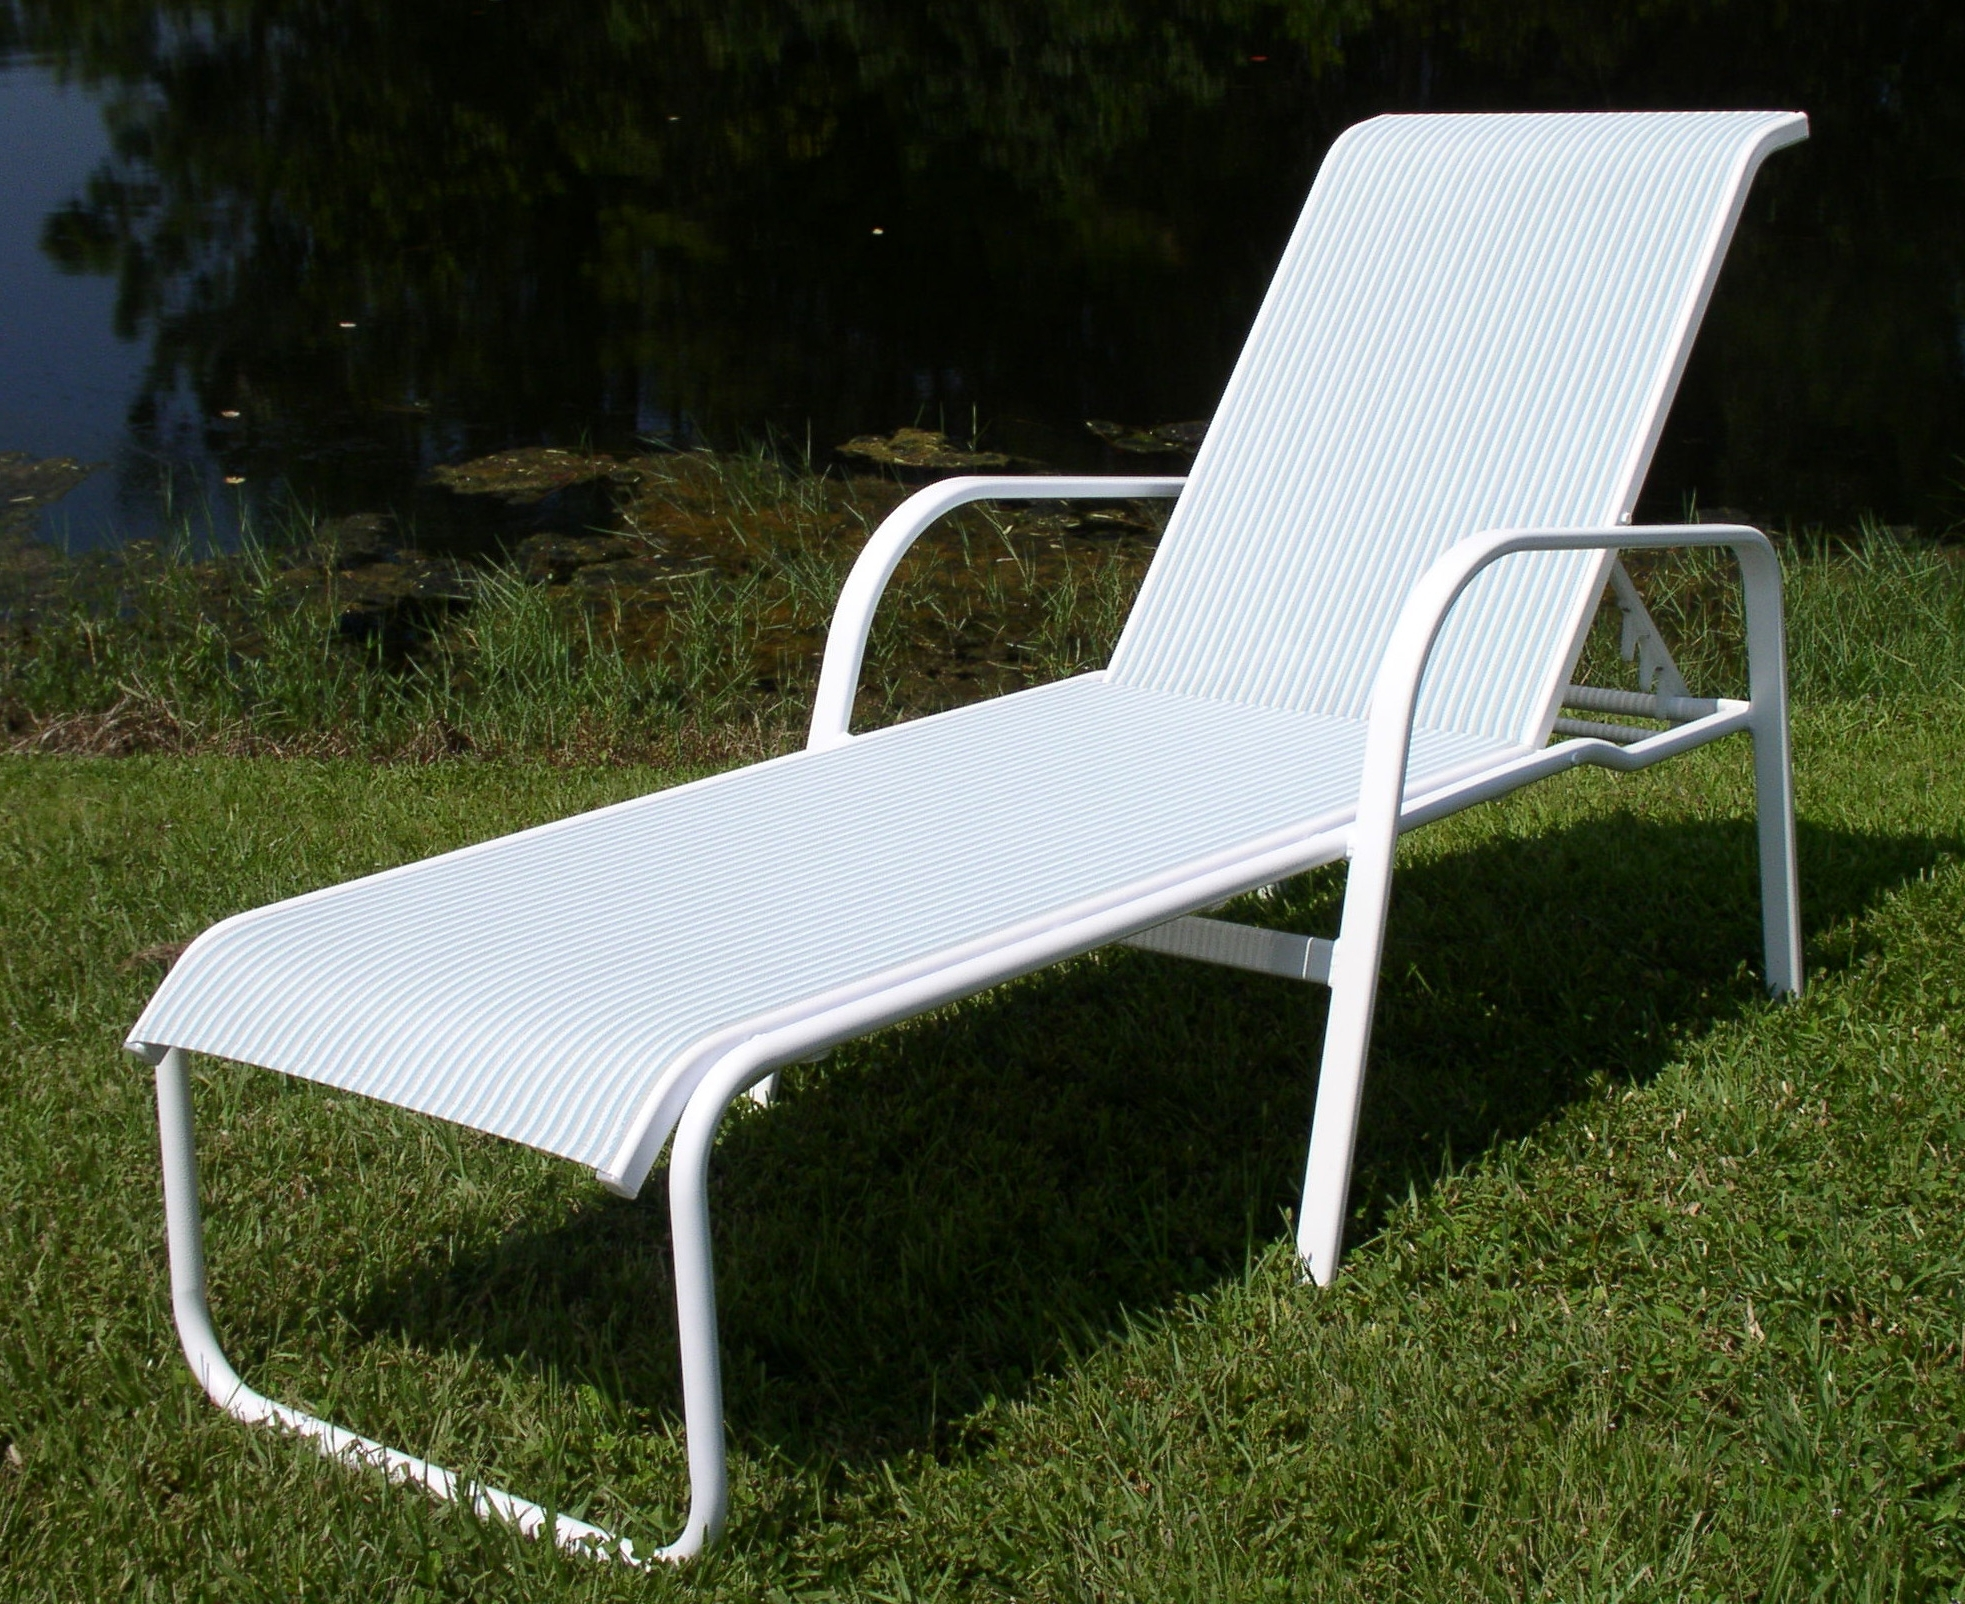 Most Recent Chaise Lounge Chairs At Sears Inside Furniture: Kmart Lawn Chairs (View 4 of 15)